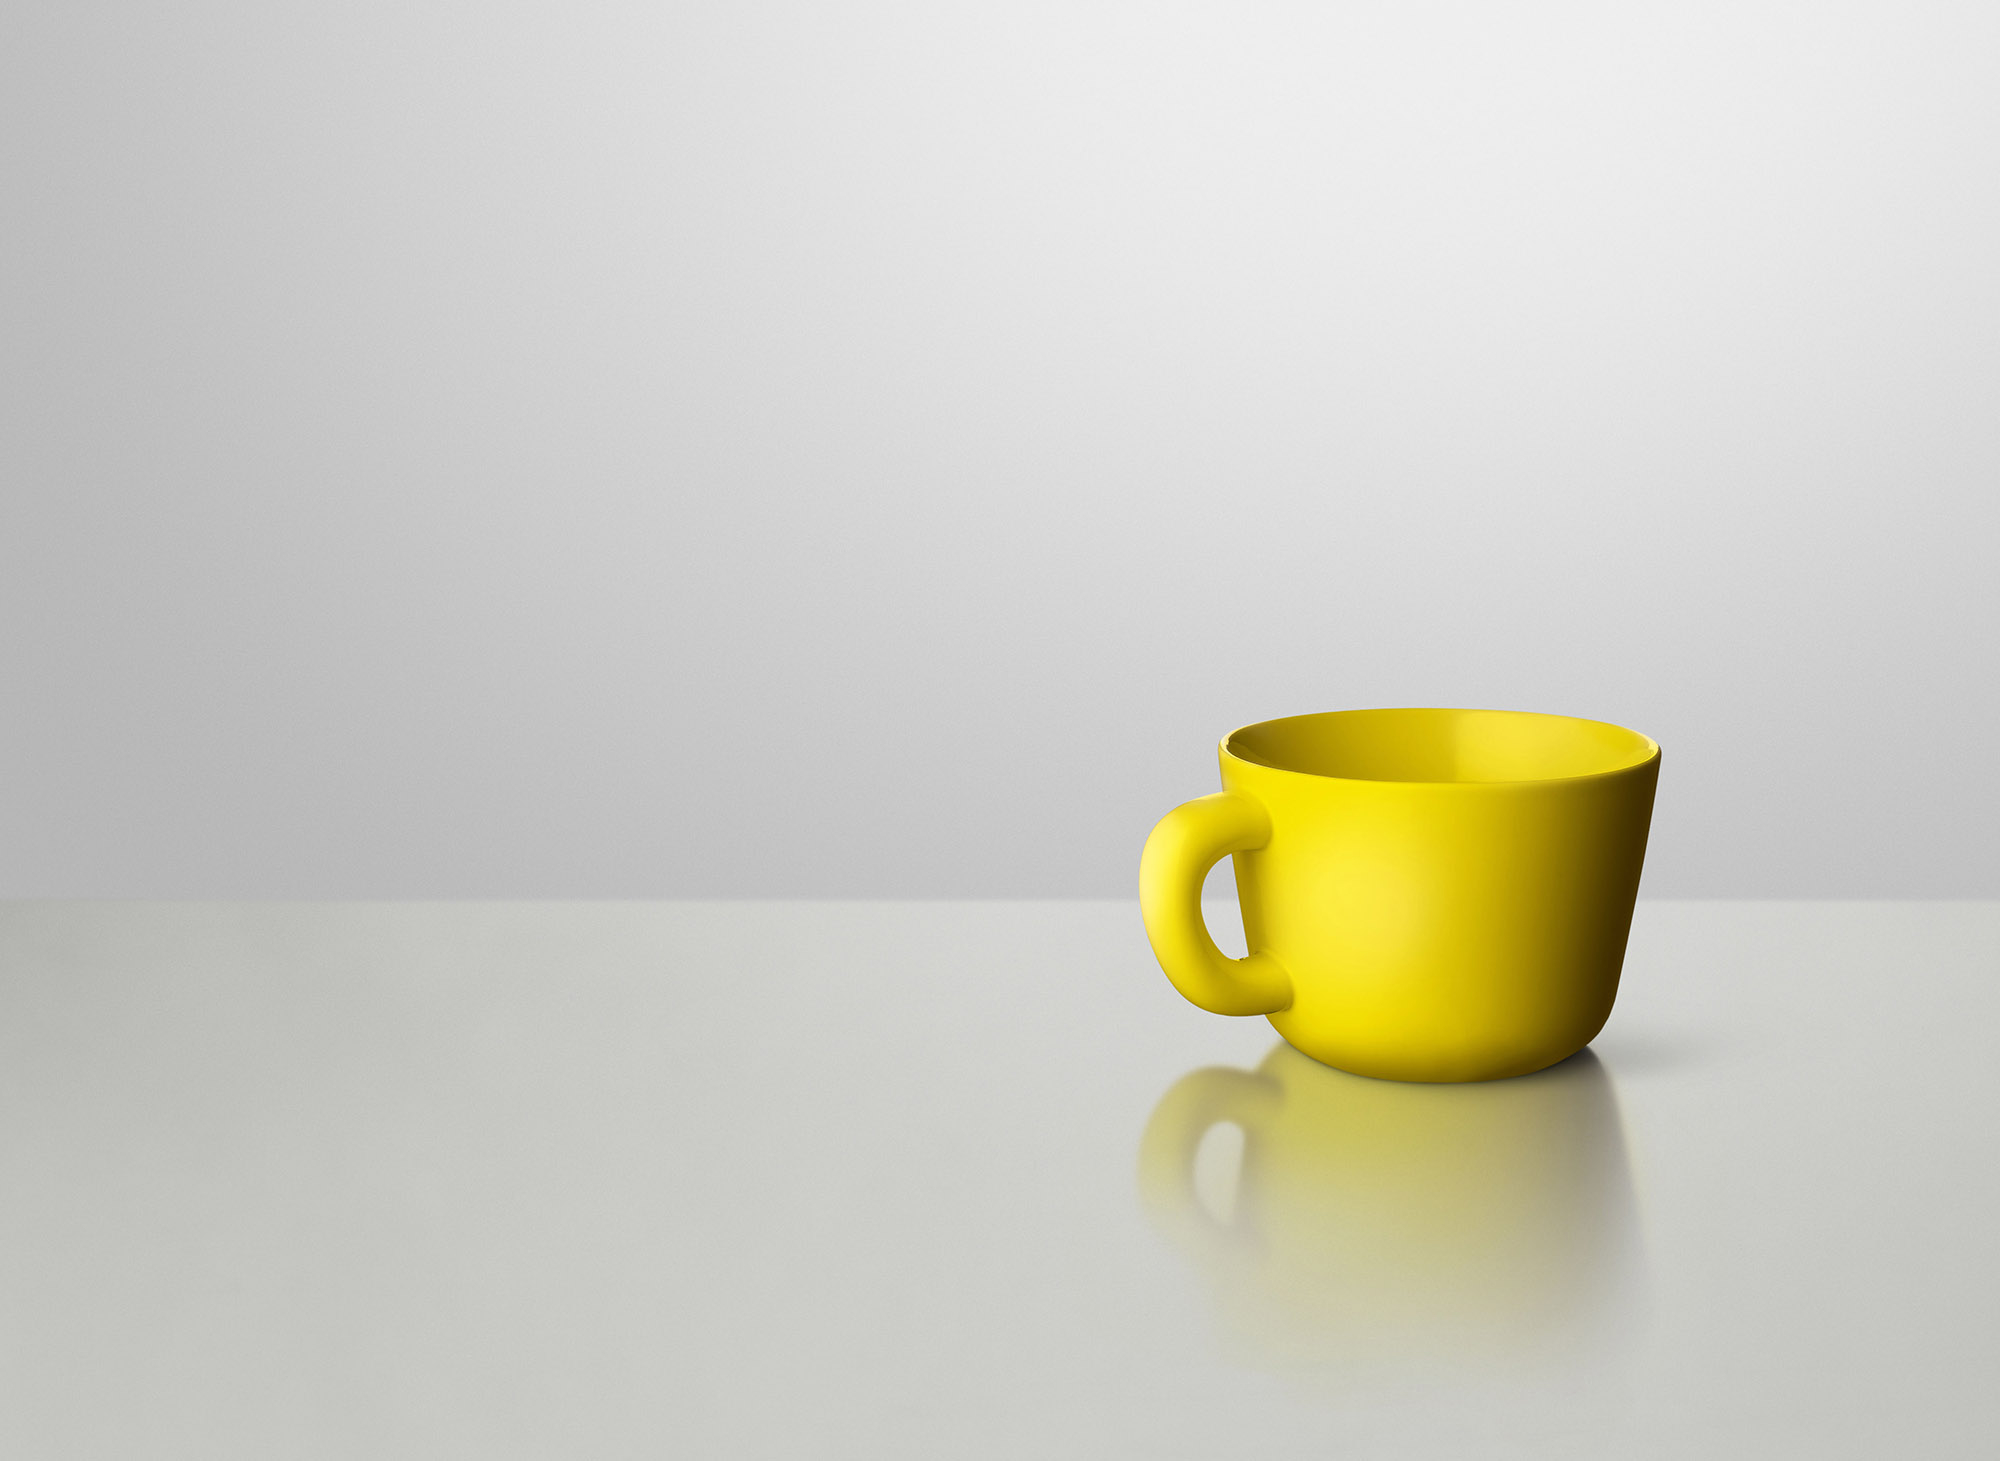 Bulky_Tea-cup_Yellow_1_2000x1461